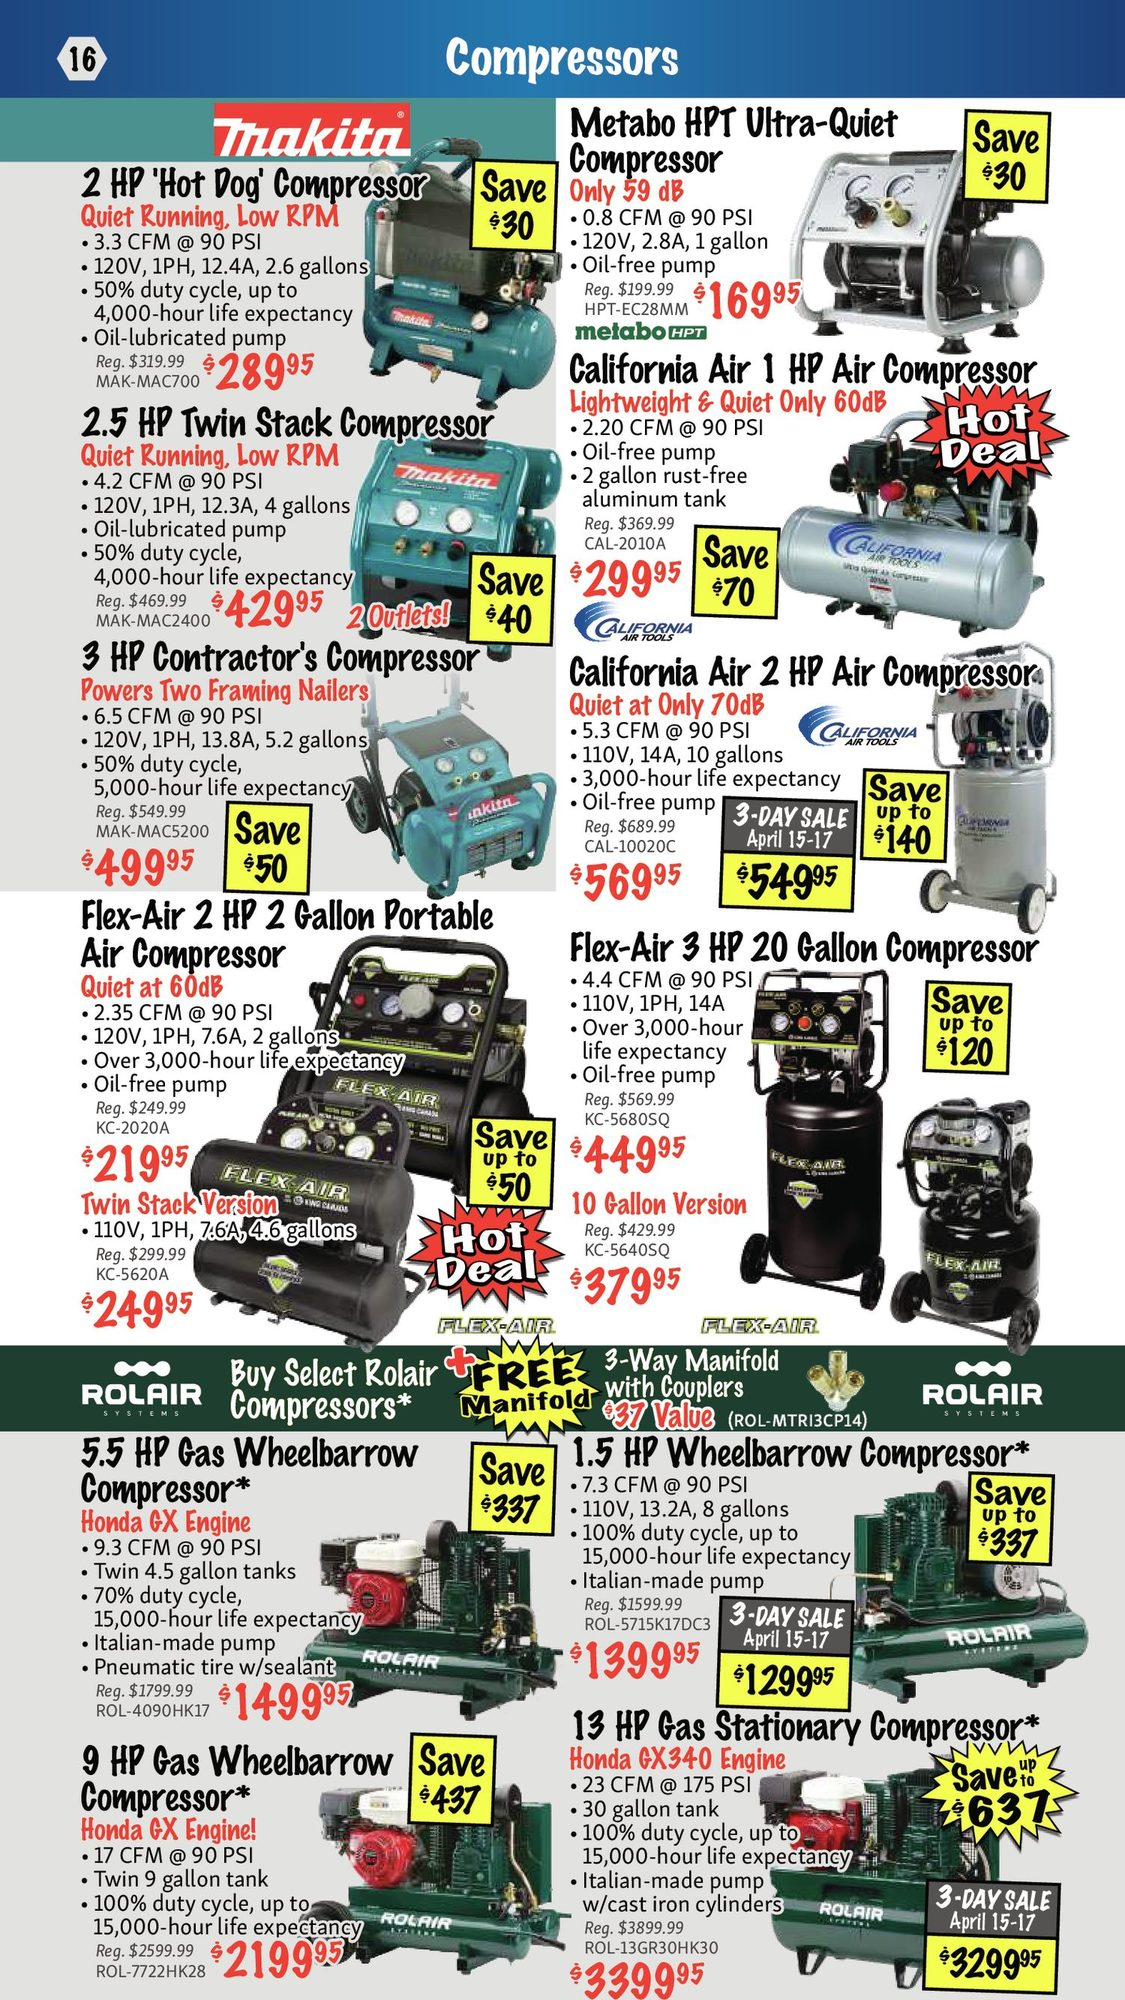 KMS Tools - Hand Tools, Air Tools & Compressor Sale - Page 16